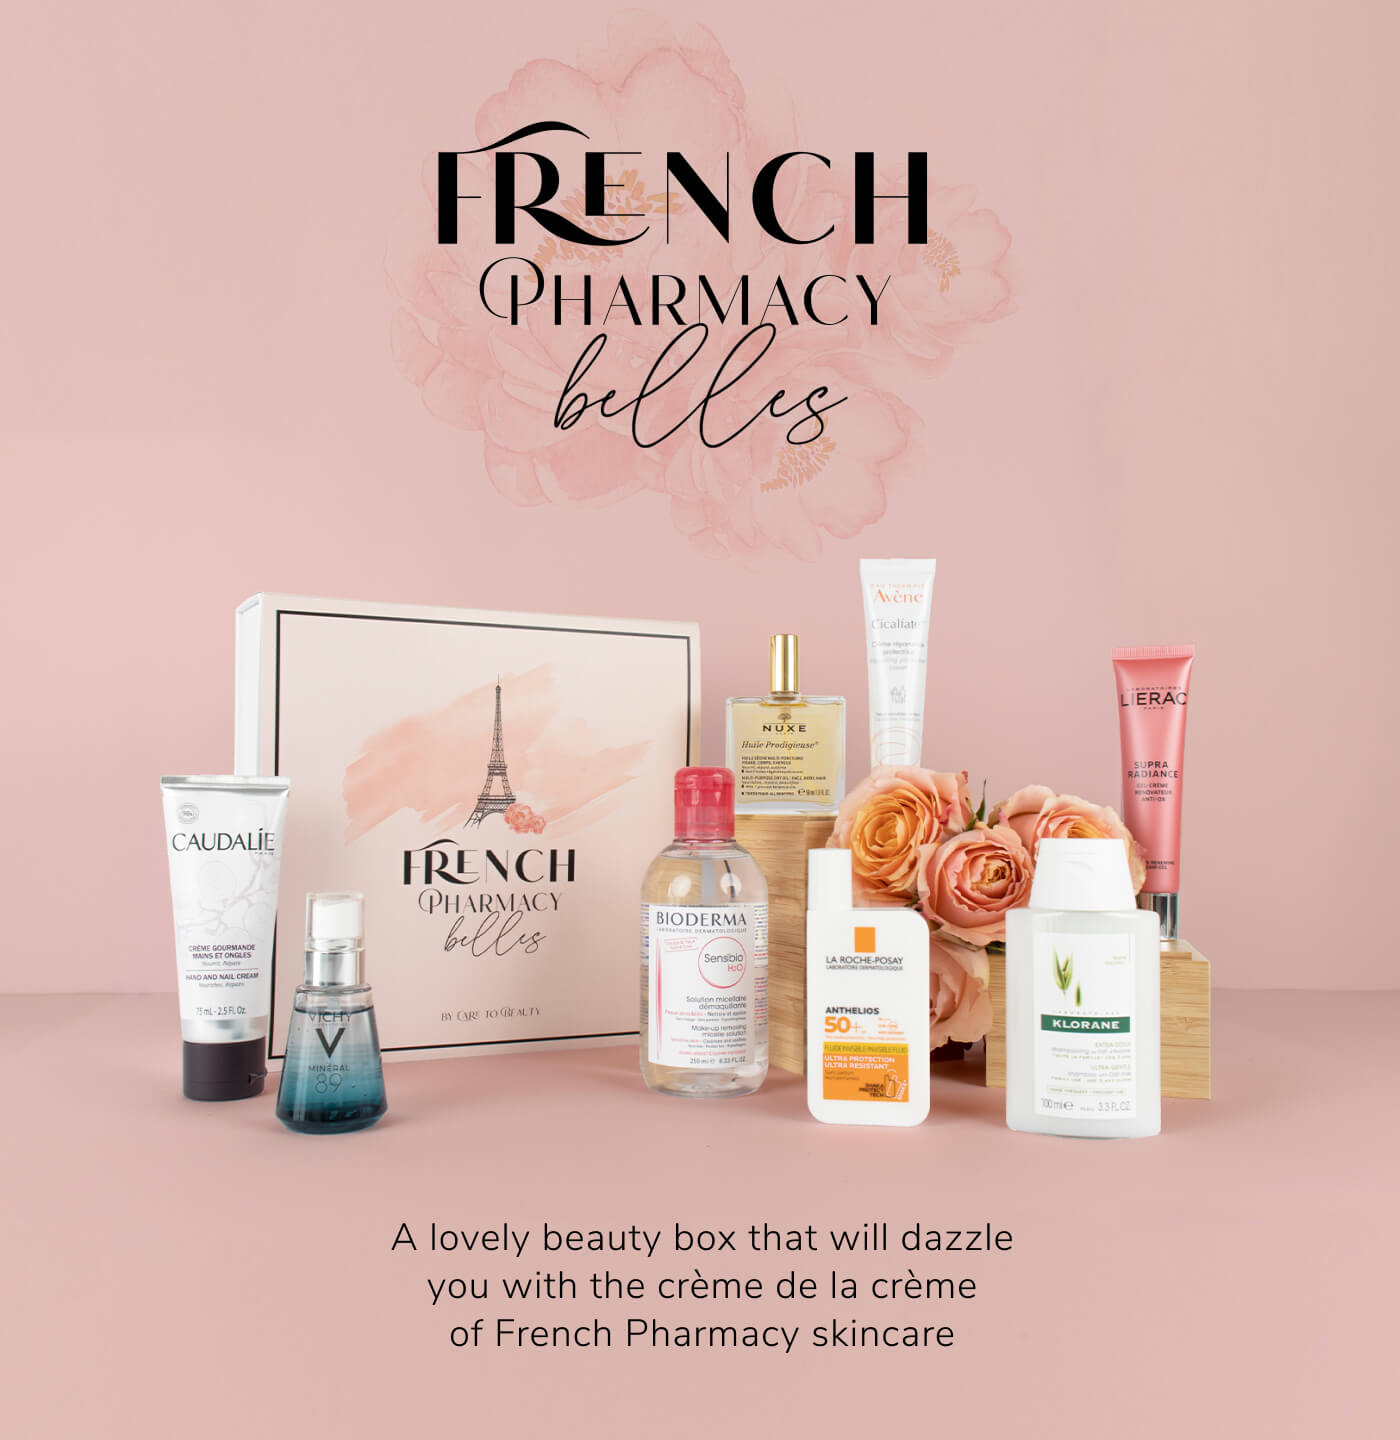 French Pharmacy Beauty Box Belles